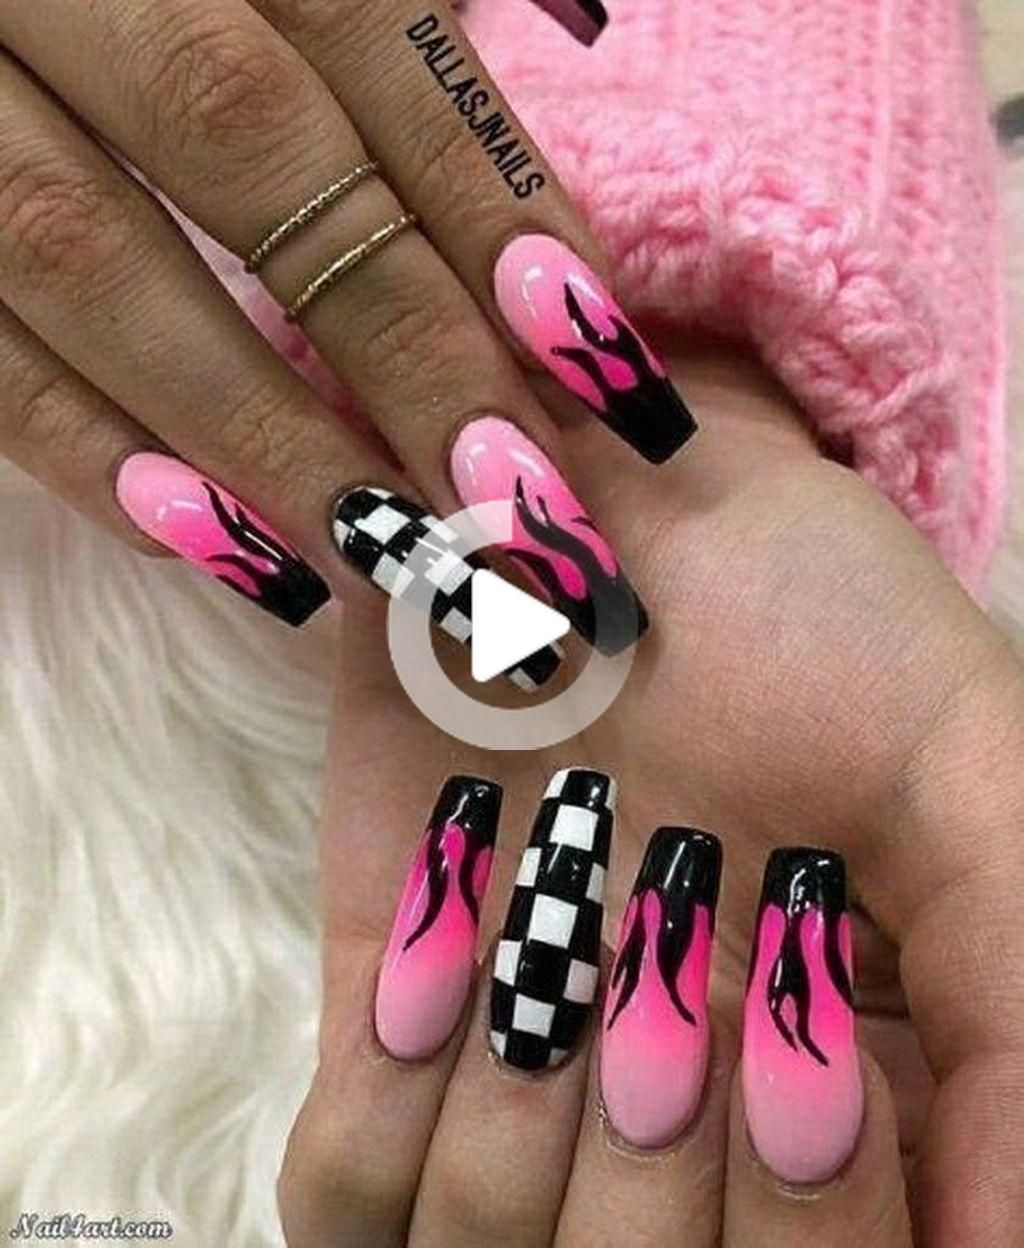 Stylish 30+ Casual Acrylic Nail Art Designs Ideas To Fascinate Your Admirers #celebrity #celebrities